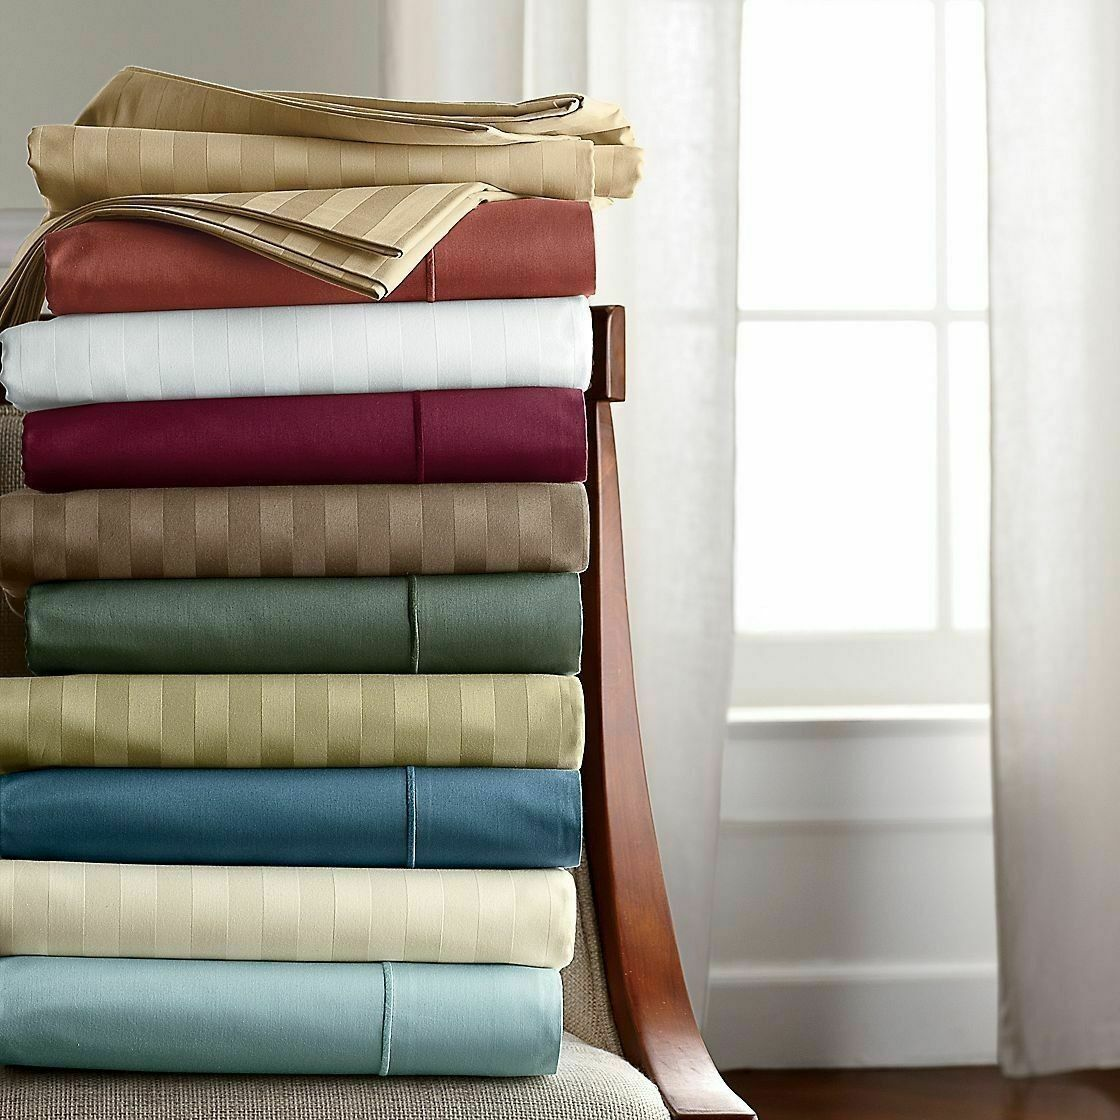 3 PCs Duvet Set Egyptian Cotton 1000 Thread Count Multi colors Full XL Size